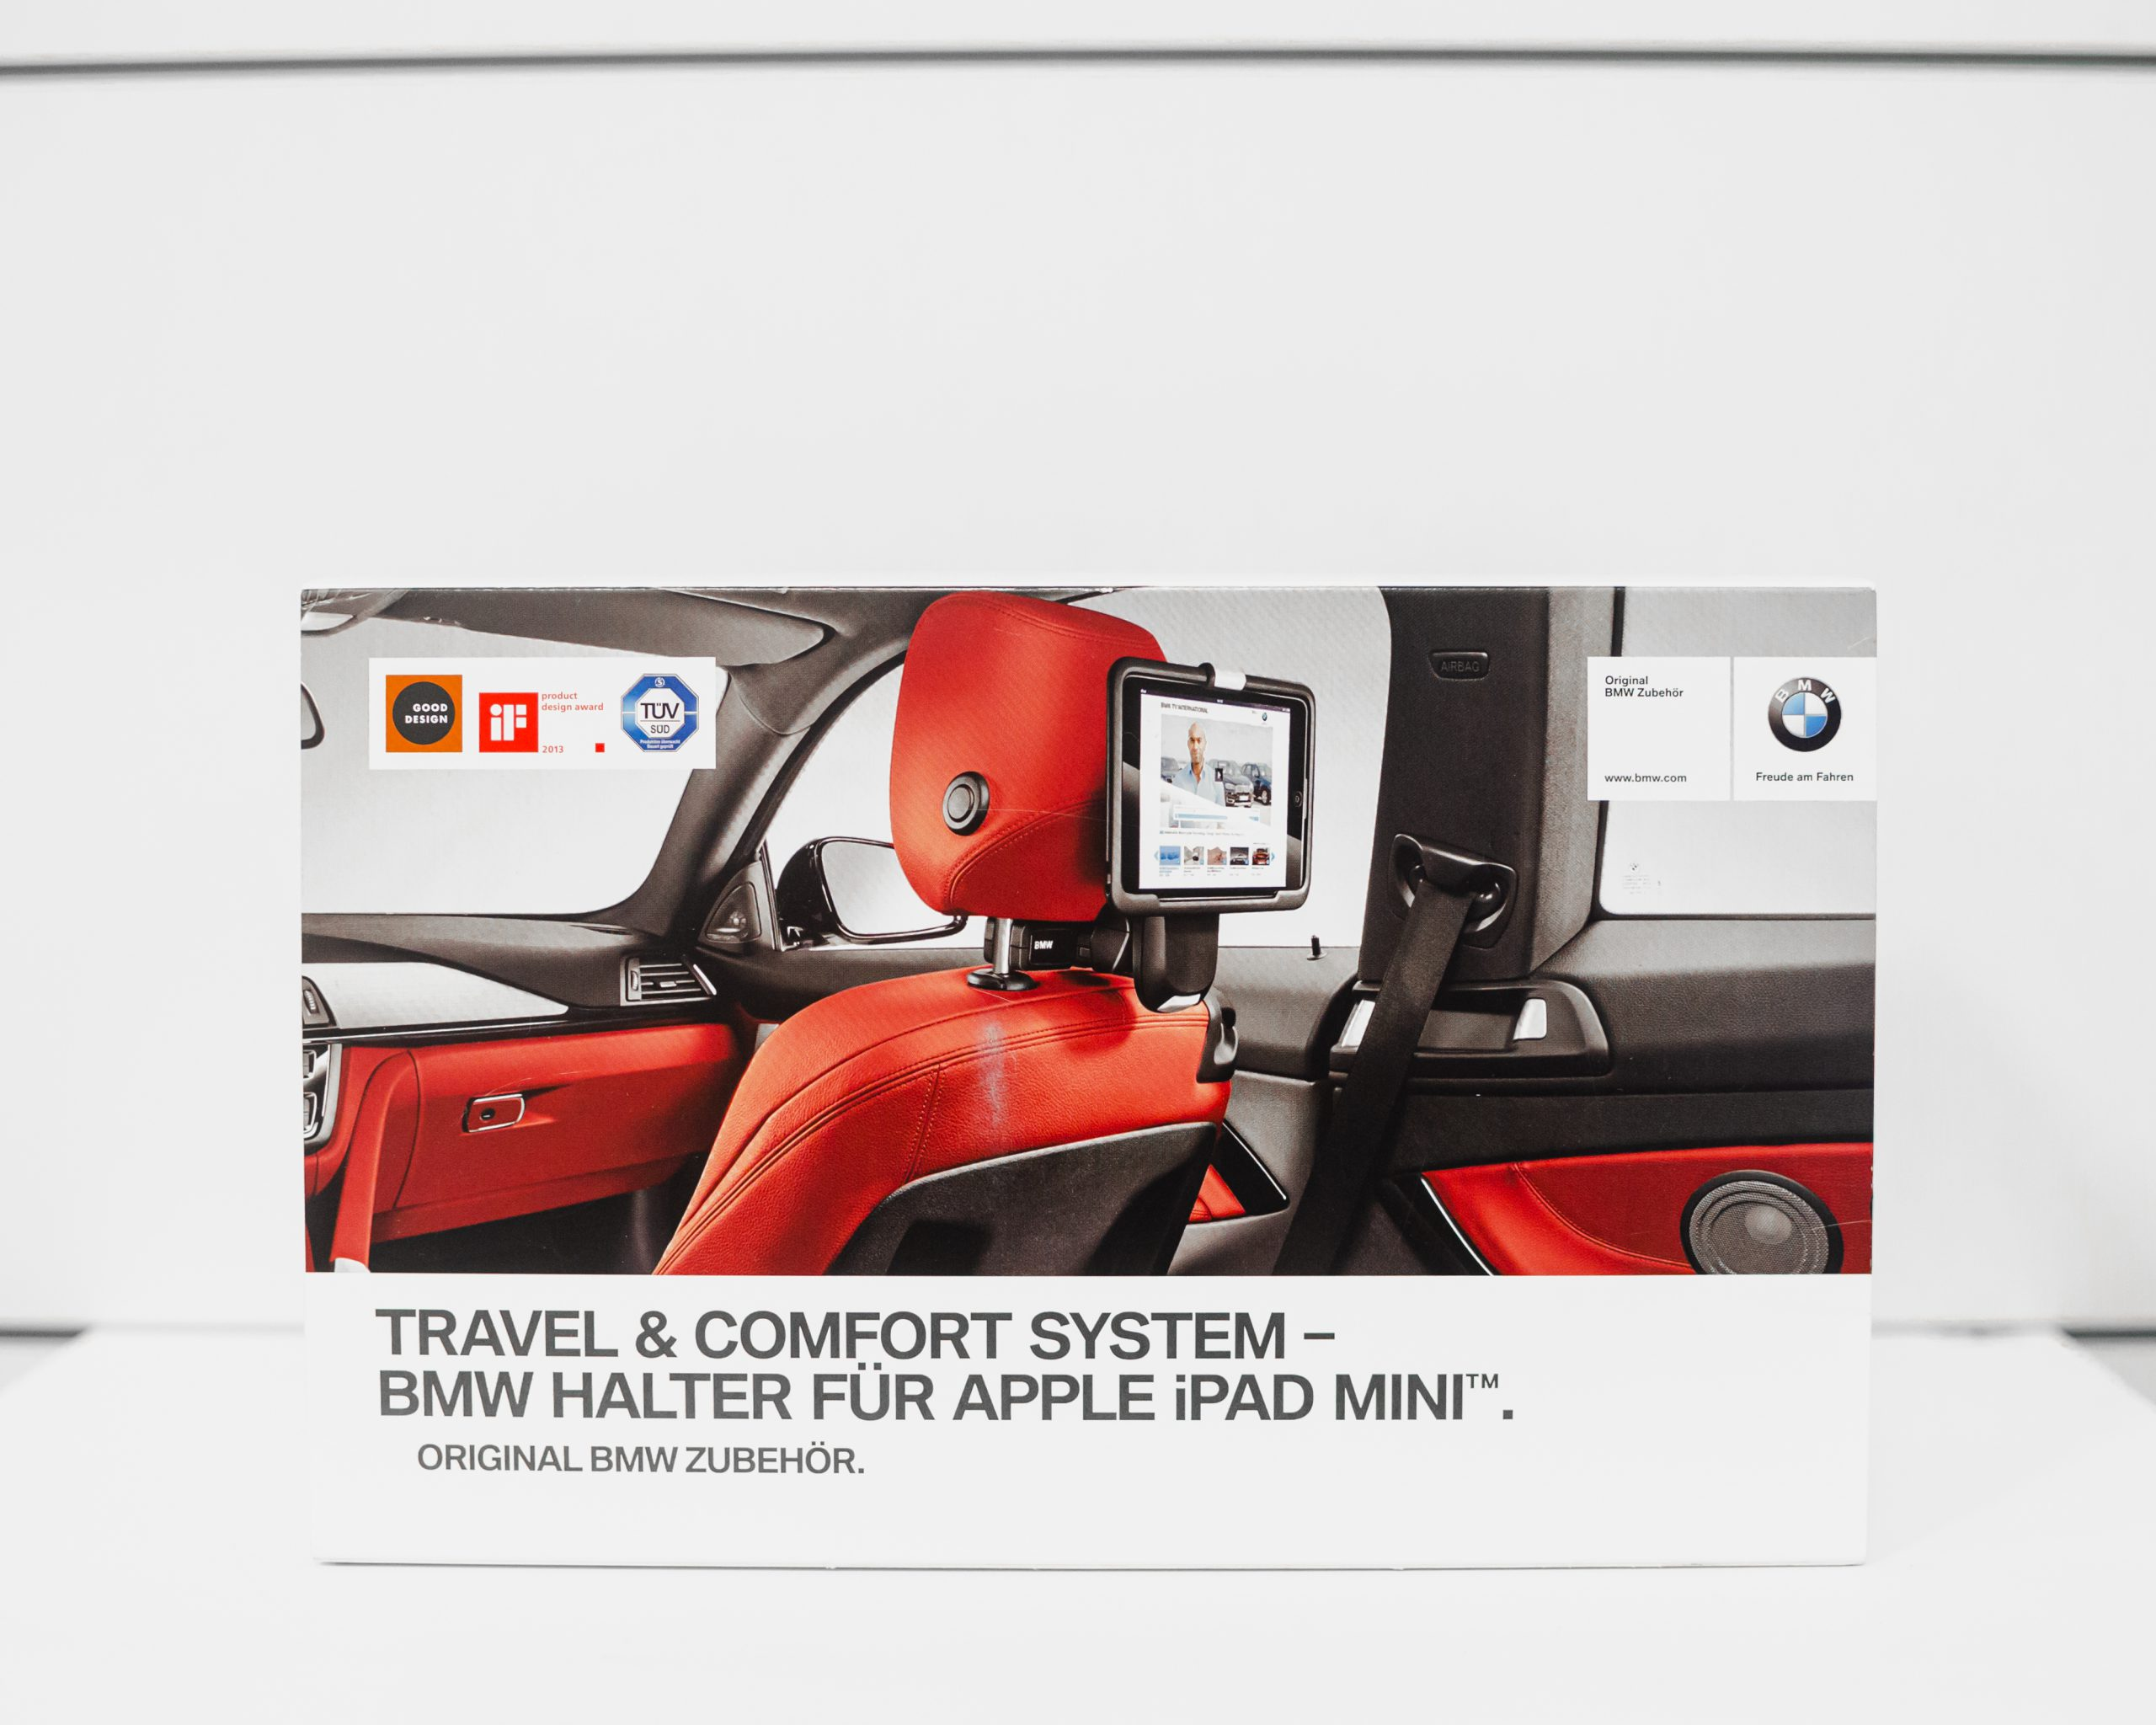 Travel & Comfort System – BMW Holder for Apple iPad MINI